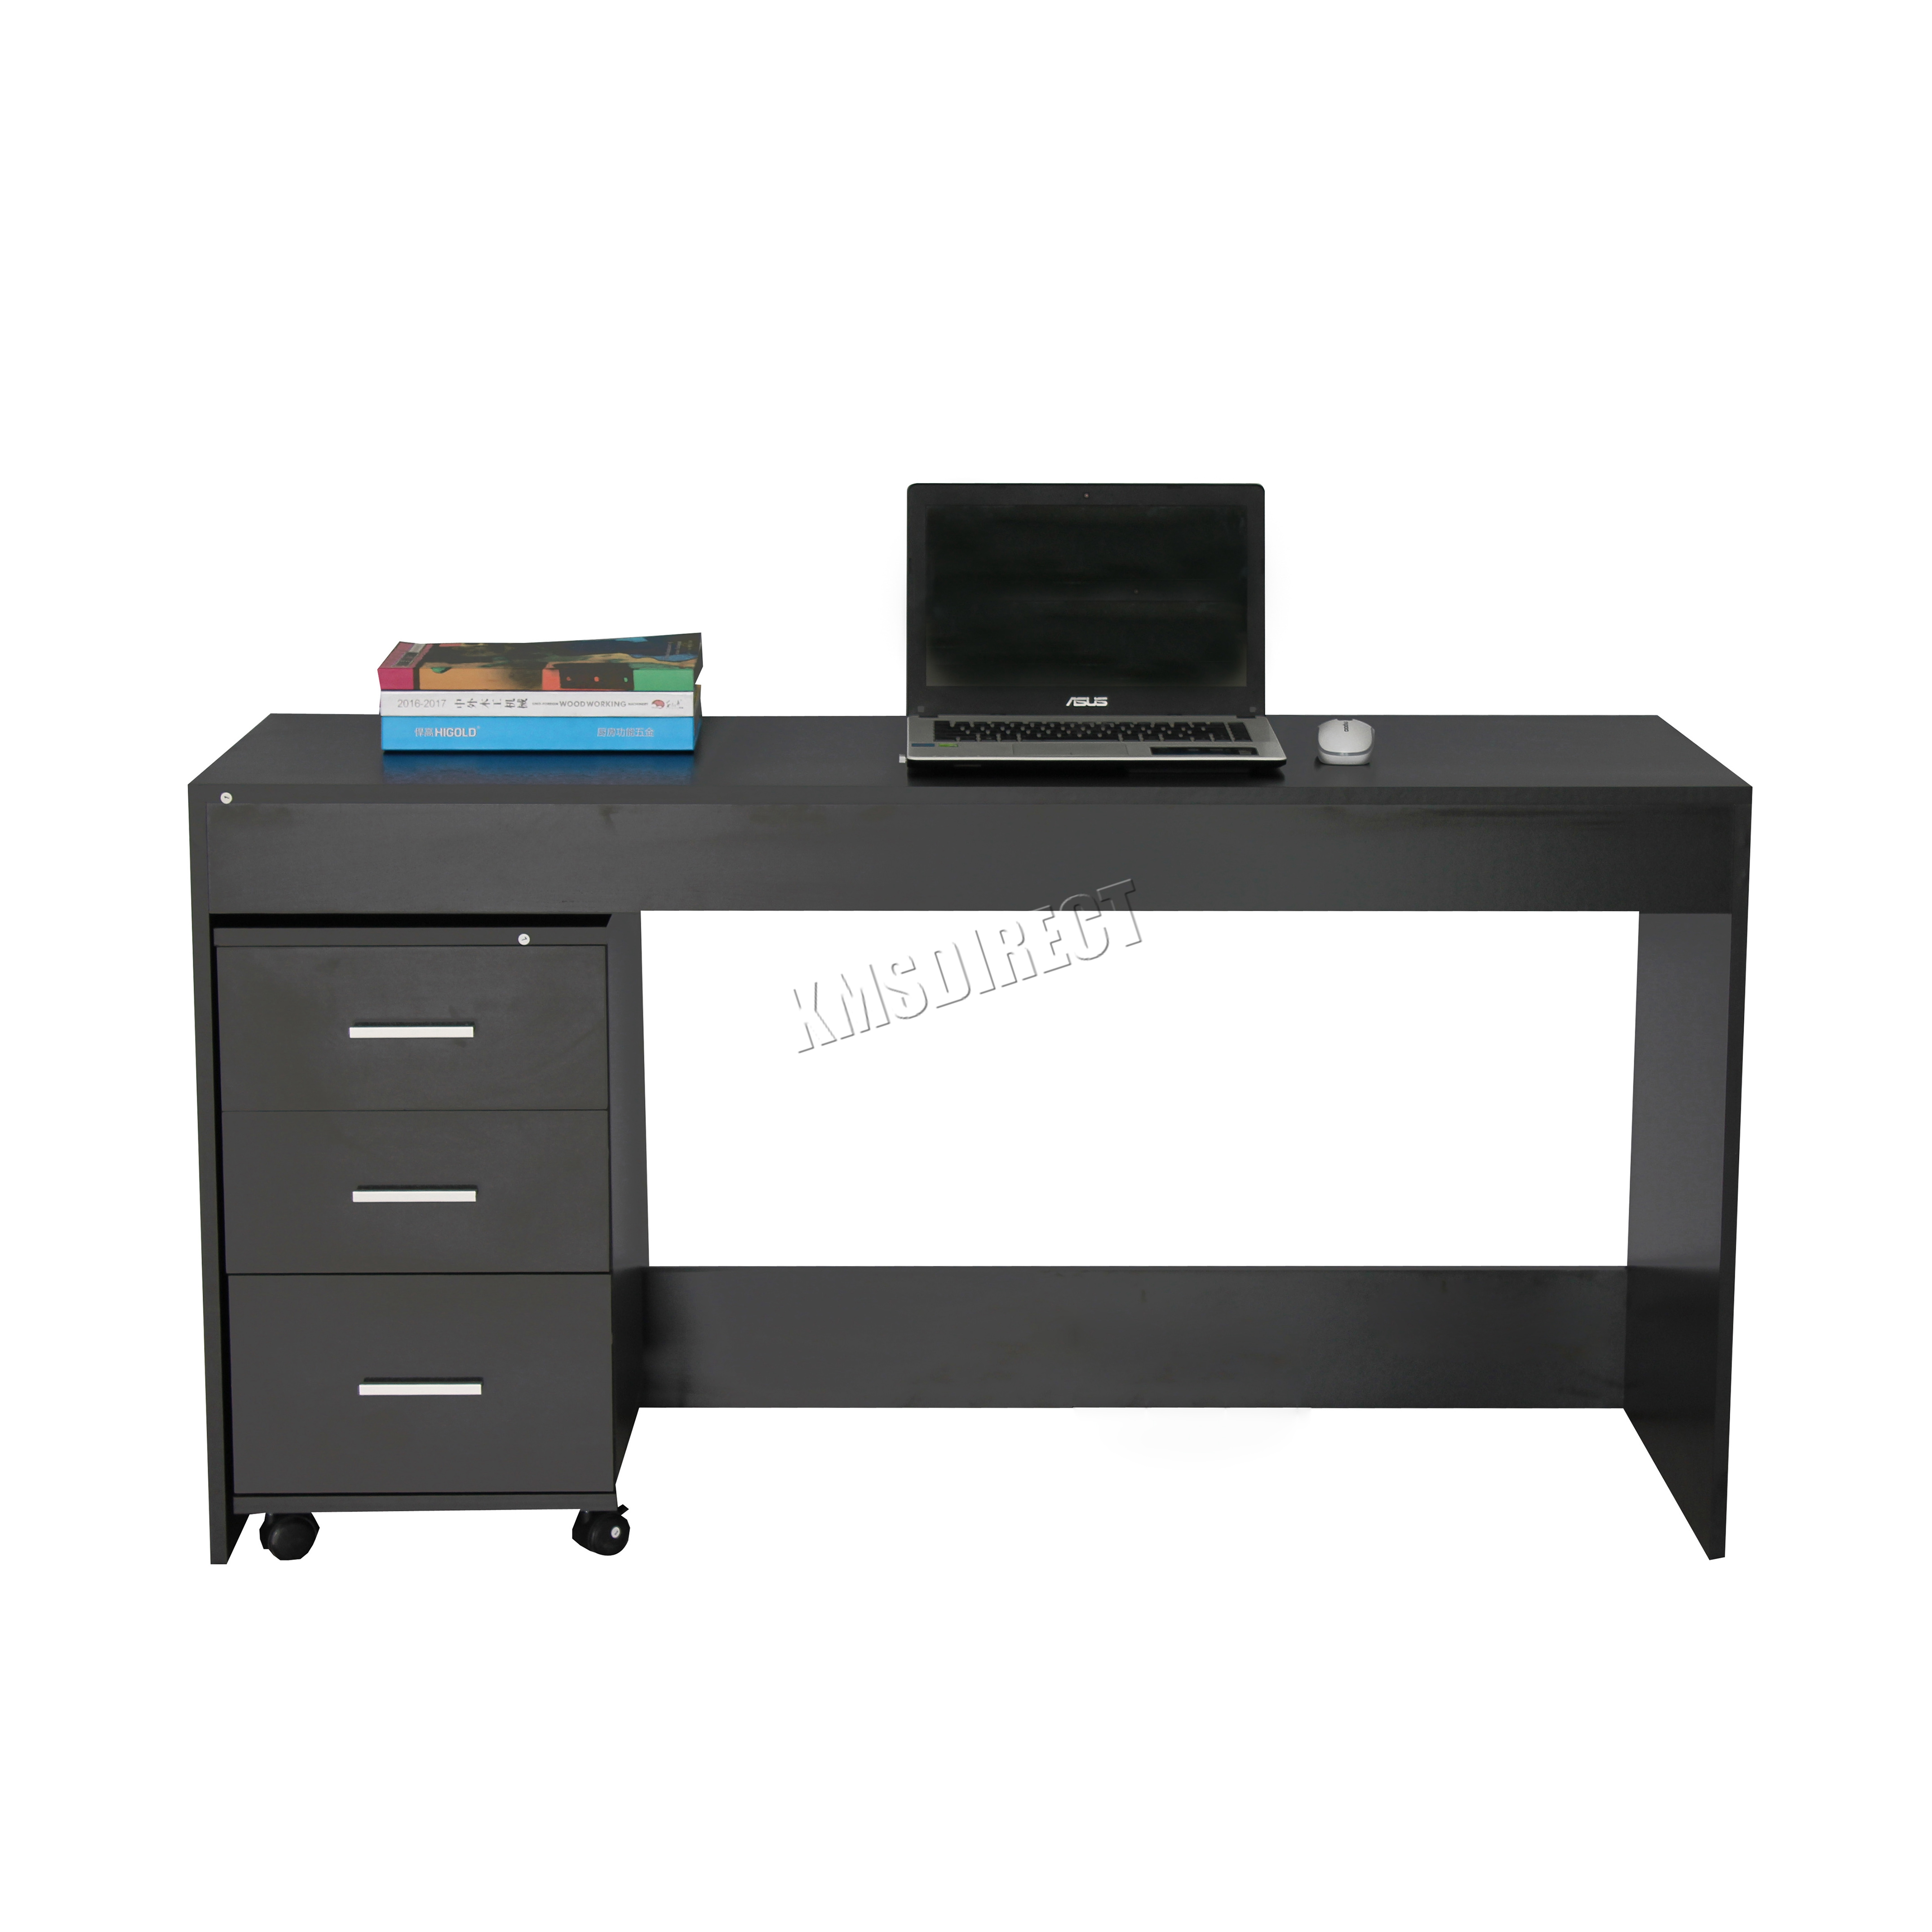 Sentinel Westwood Computer Desk Table With 3 Drawers Home Office Furniture Cd09 Black